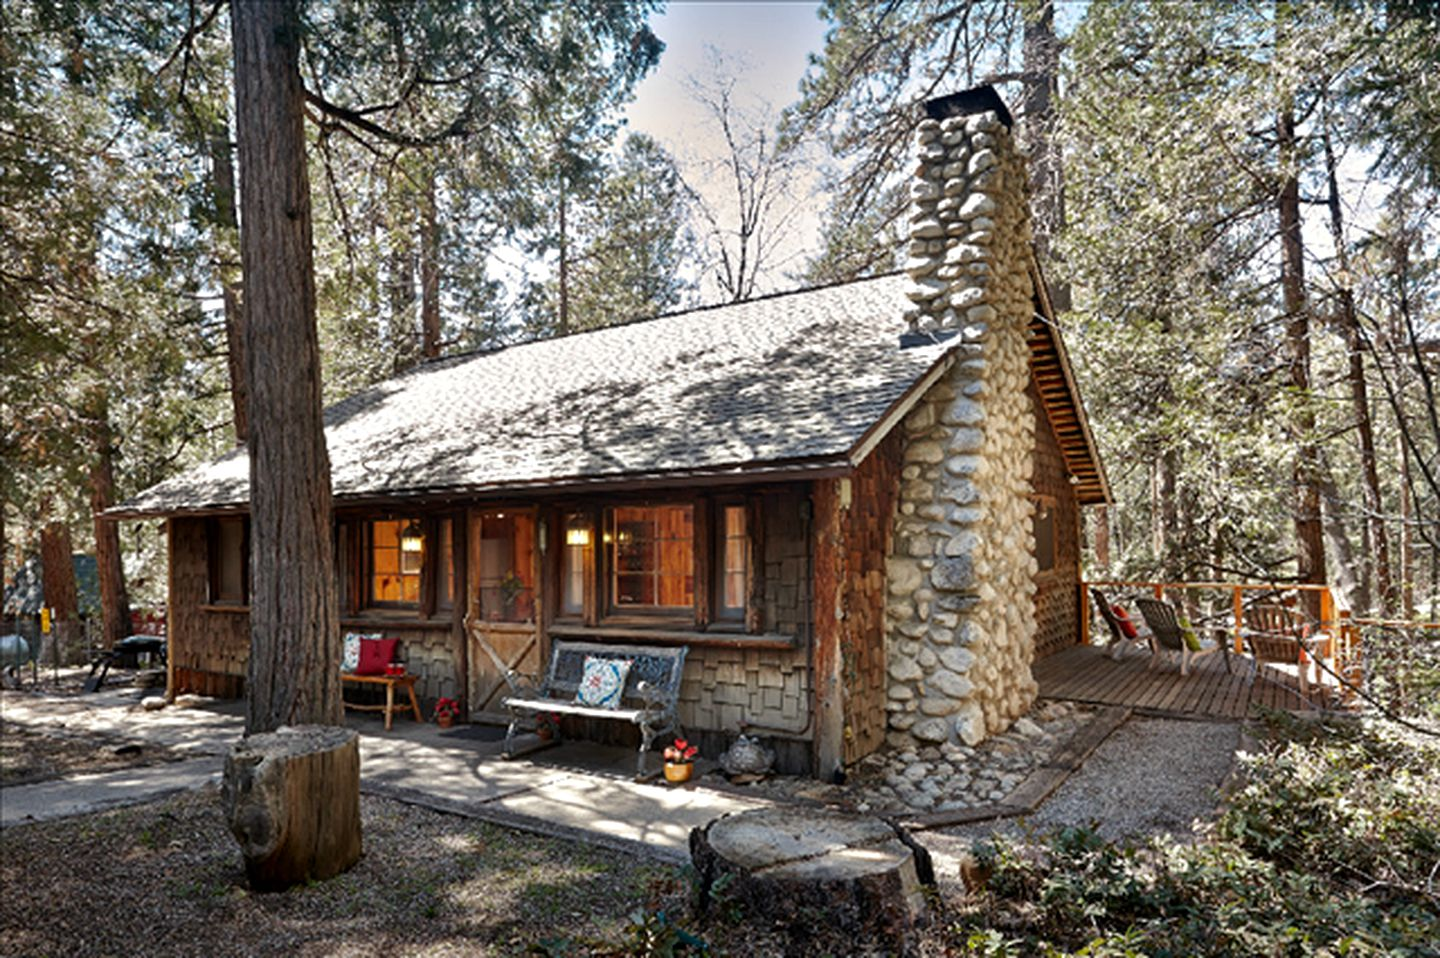 Cabins (Idyllwild, California, United States)